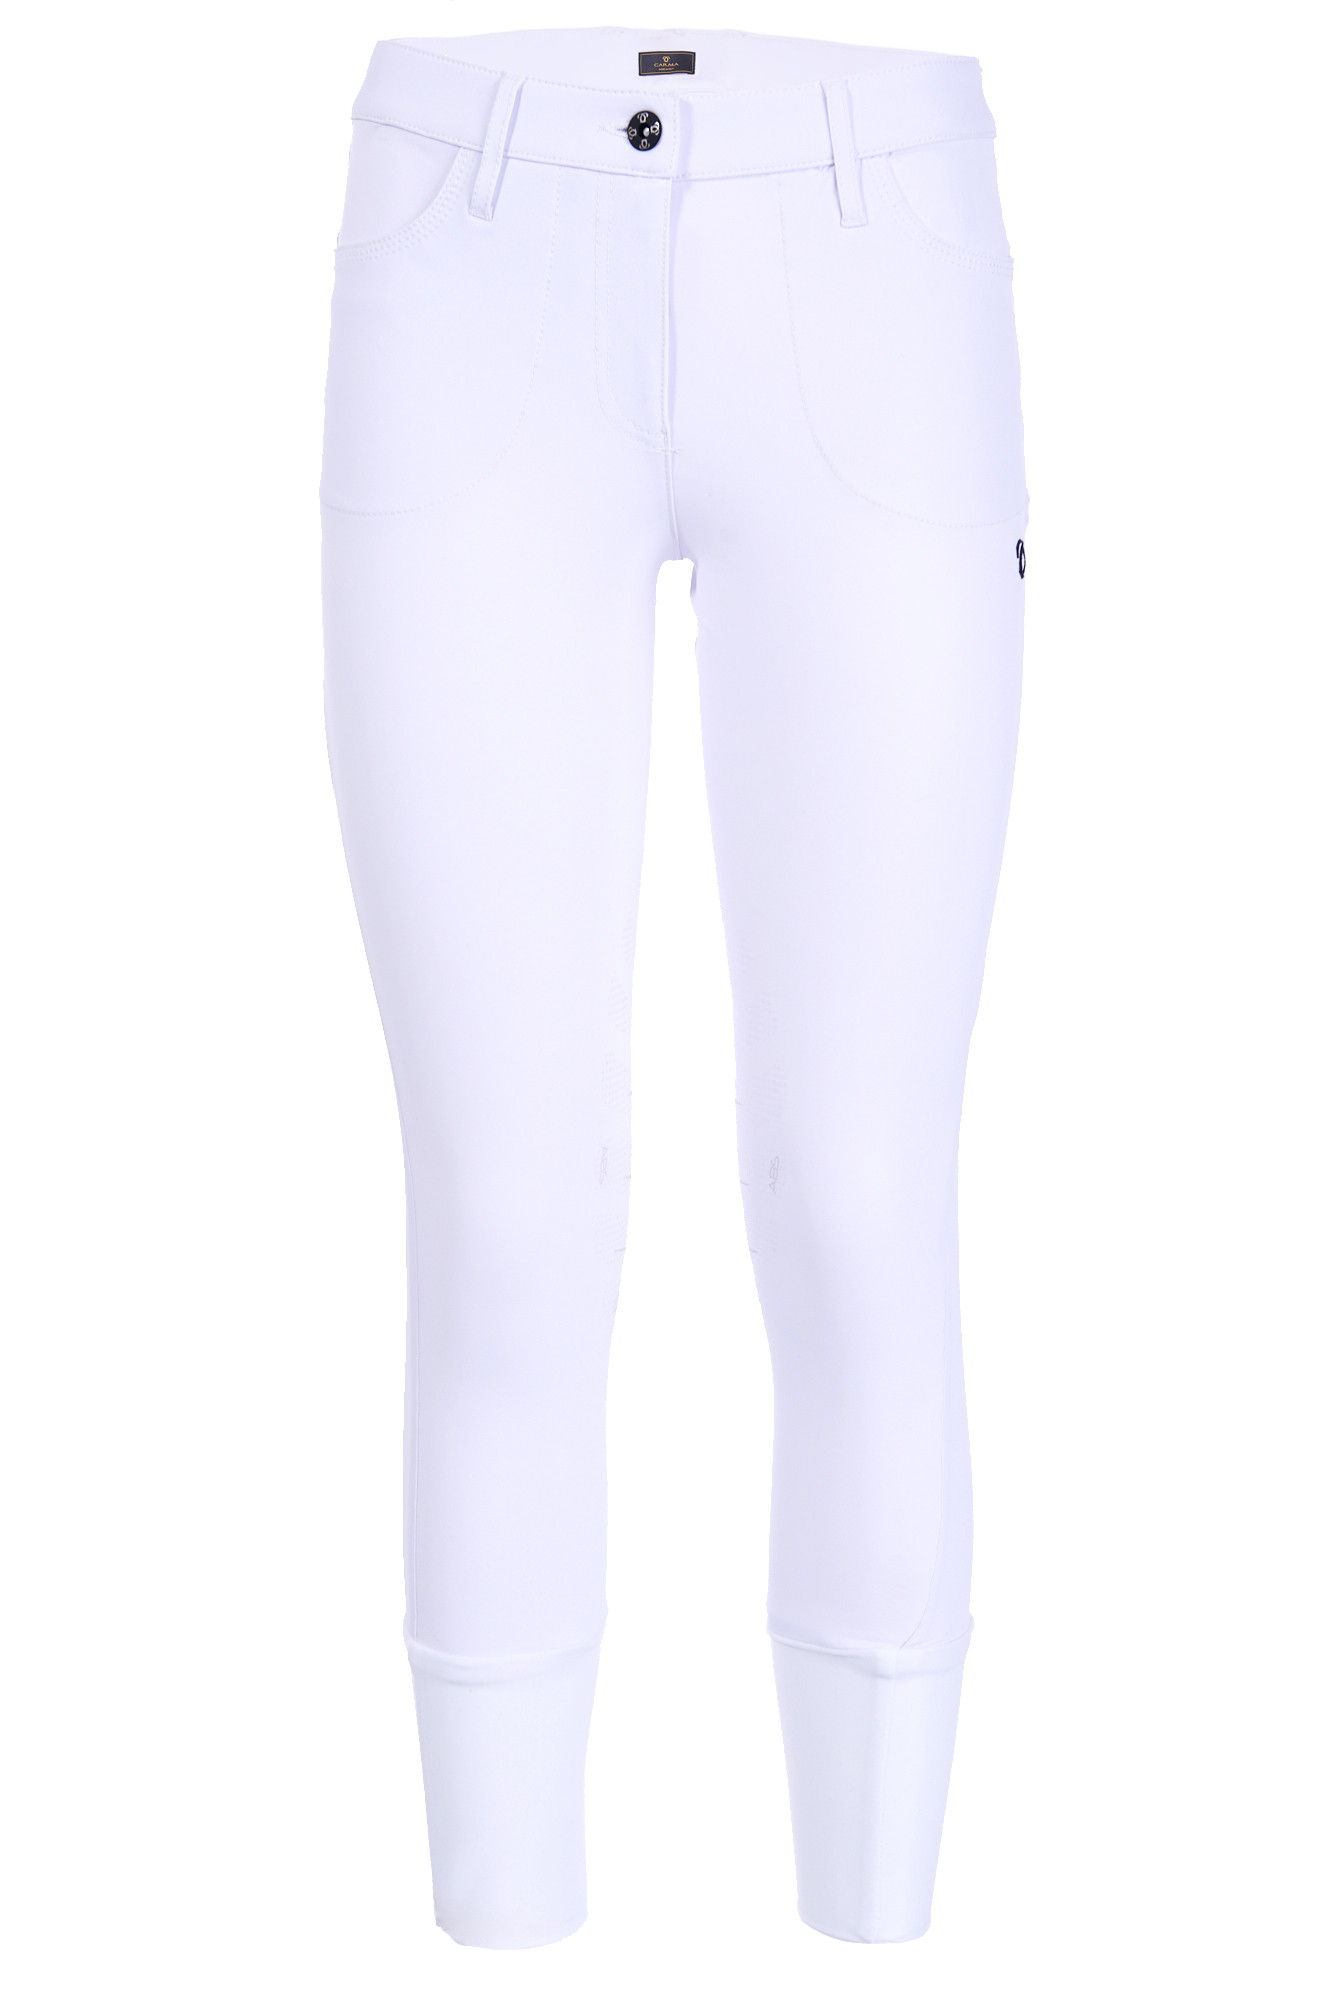 Carma Women's Wonder Pat Breeches